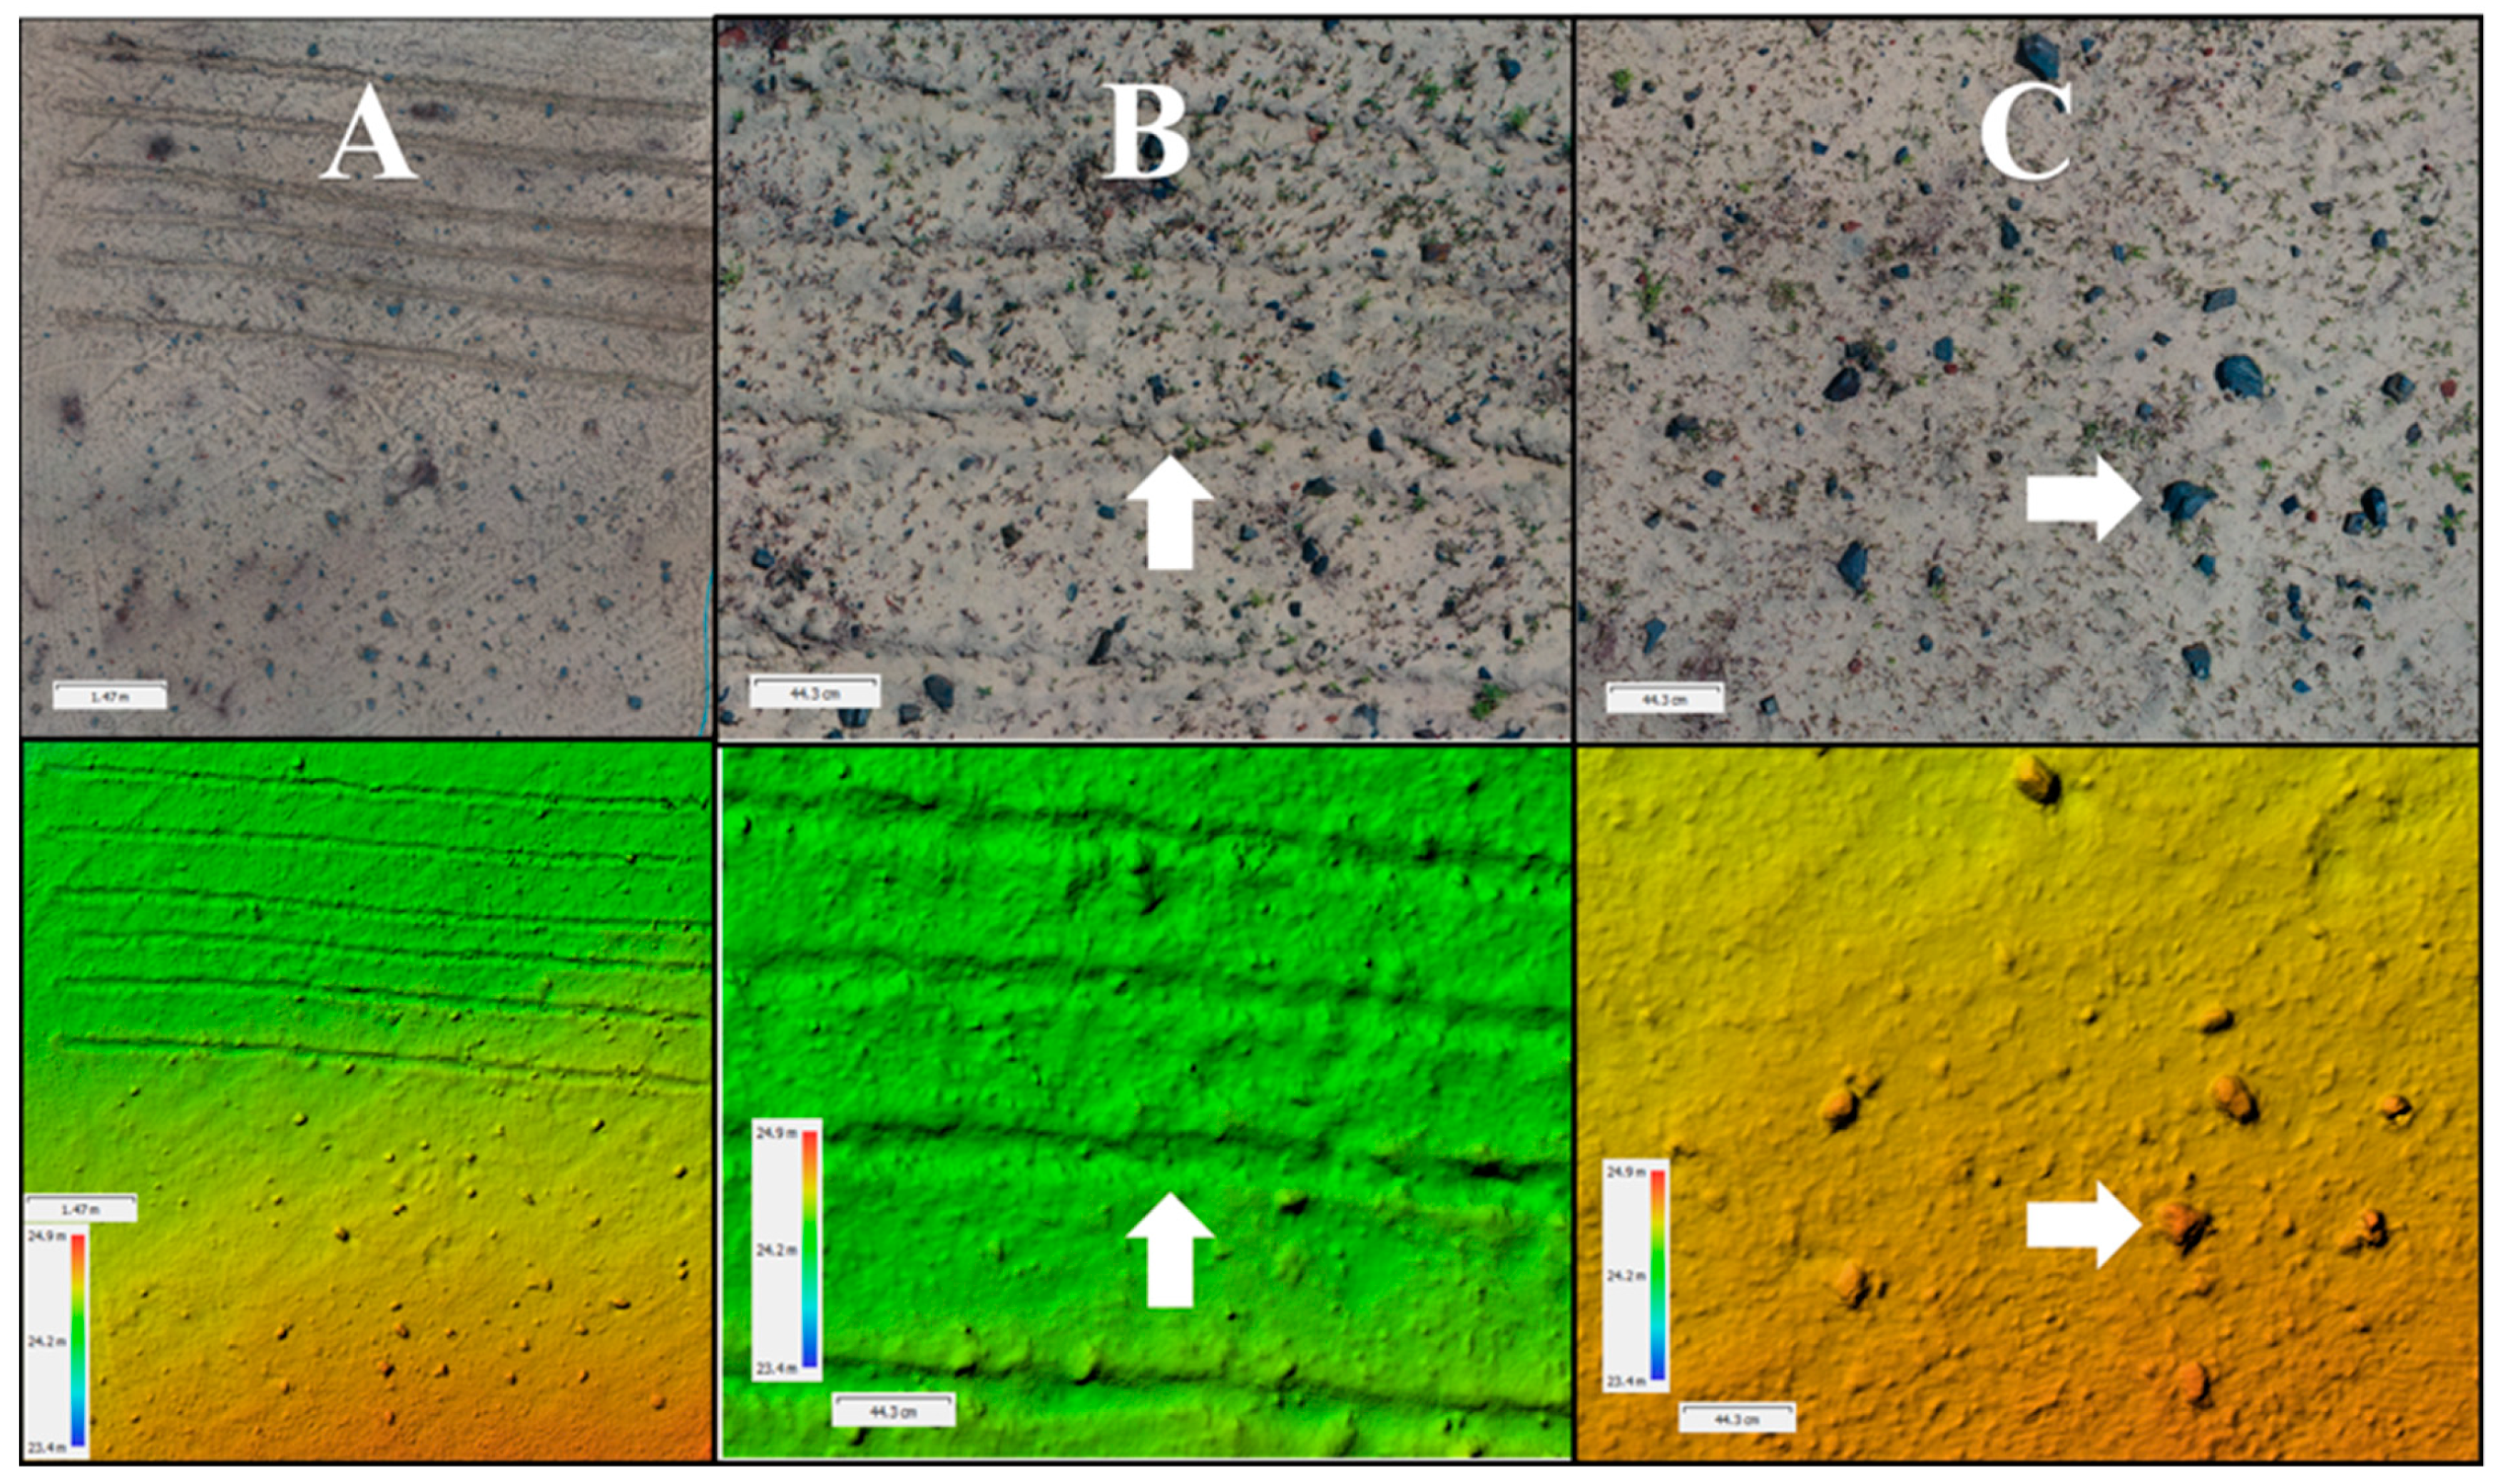 Drones   Free Full-Text   Seed and Seedling Detection Using Unmanned